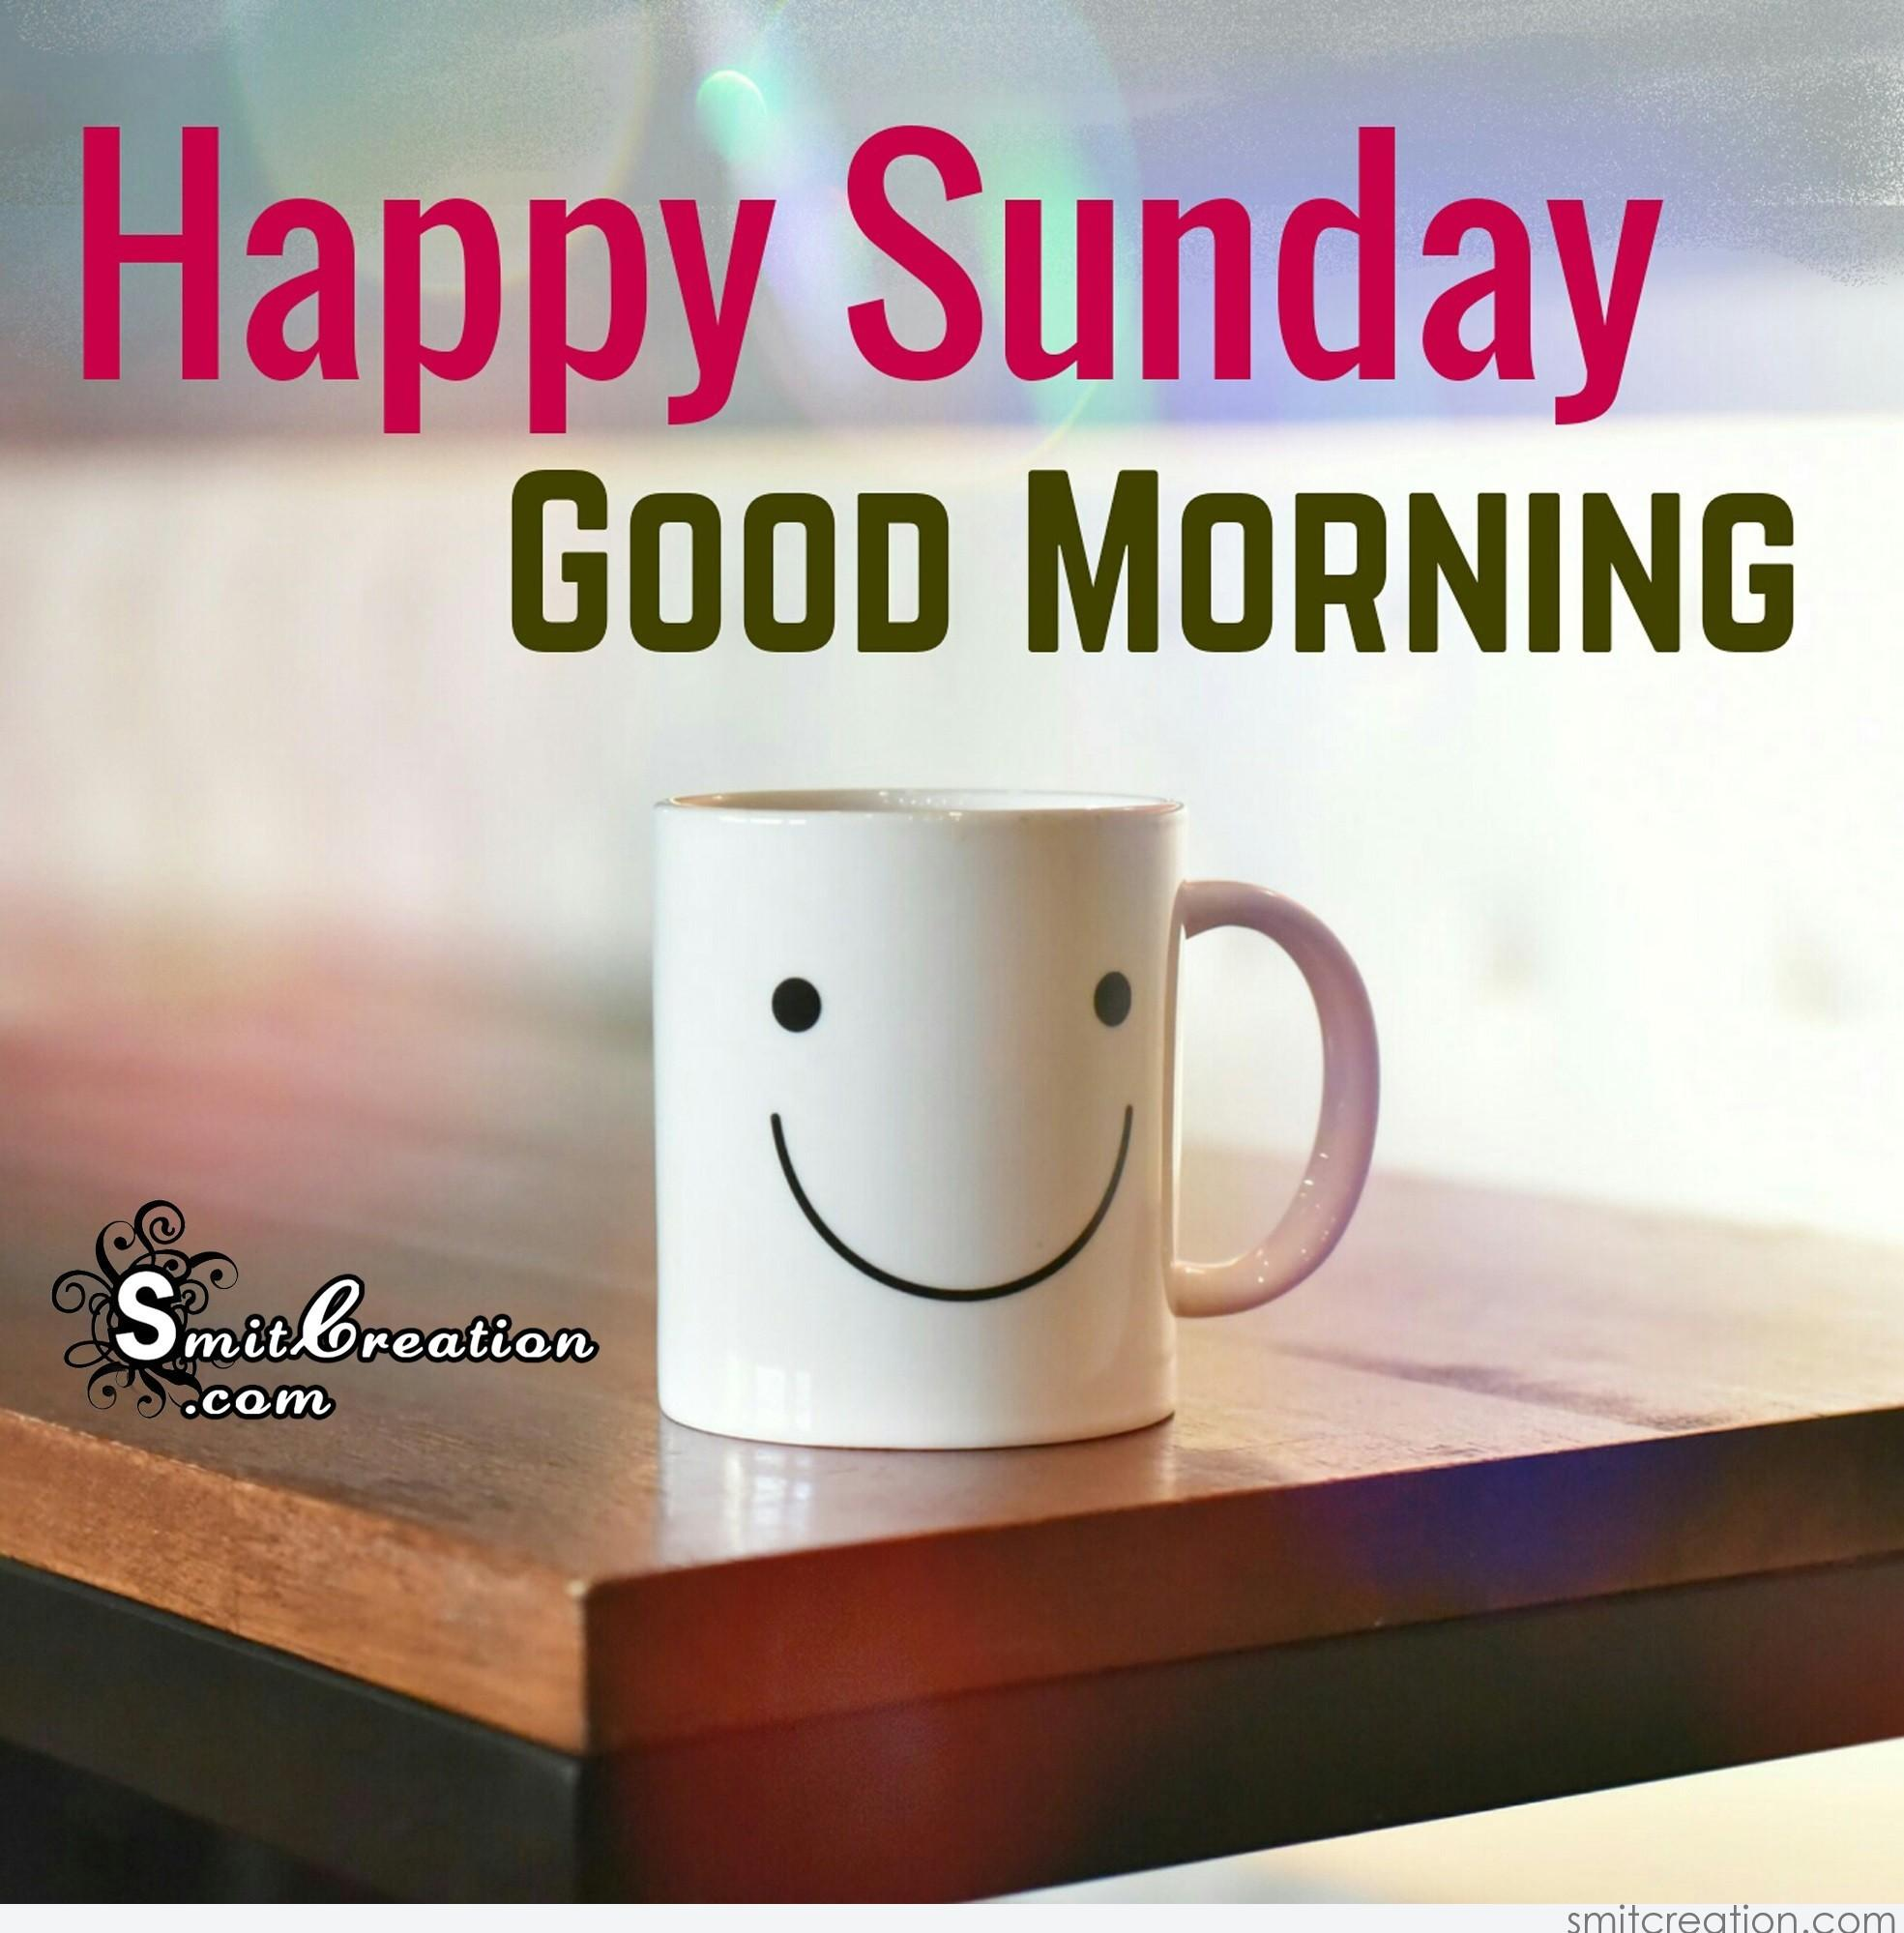 Good Morning Sunday Pick : Happy sunday good morning smitcreation